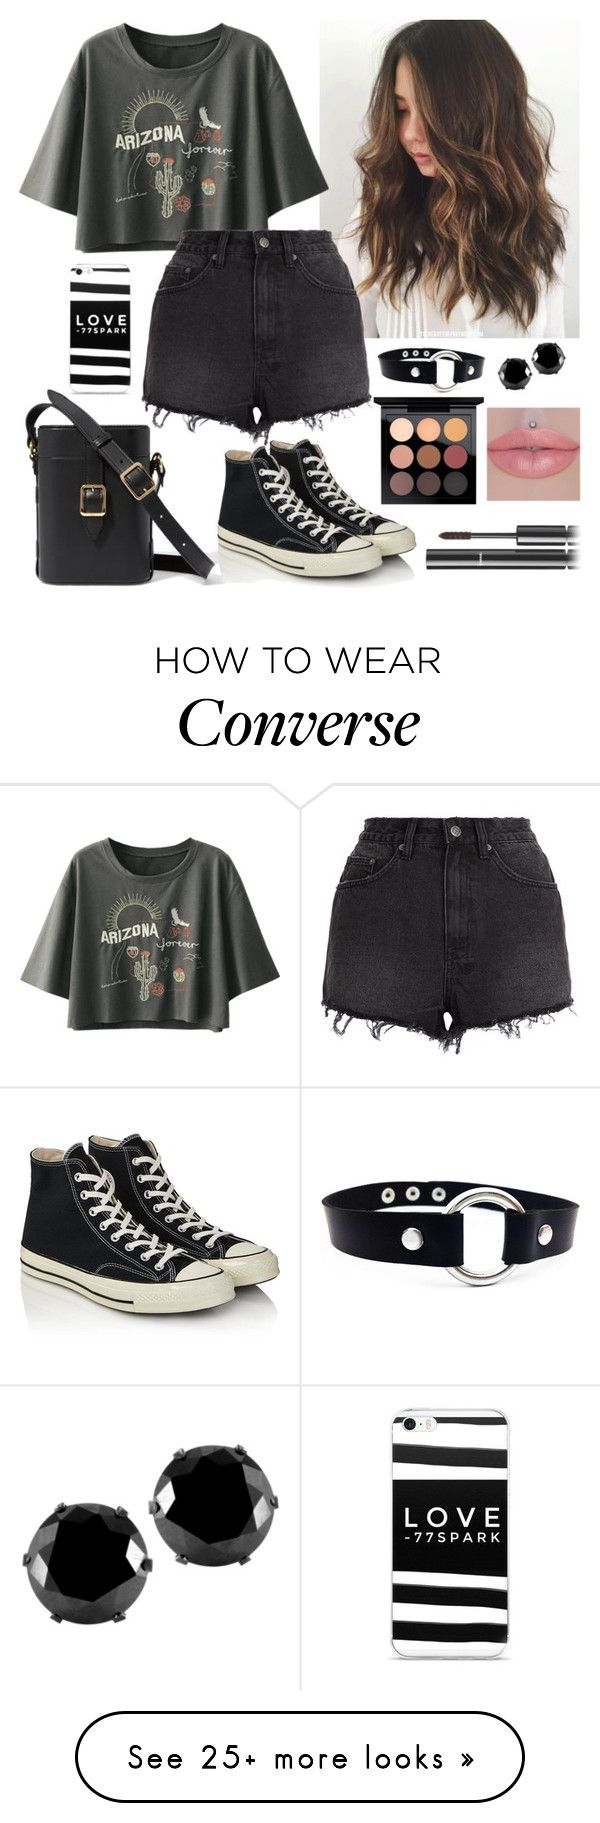 """Untitled #598"" by alemcboss on Polyvore featuring Ksubi, Converse, West Coast Jewelry, MAC Cosmetics and Chanel"